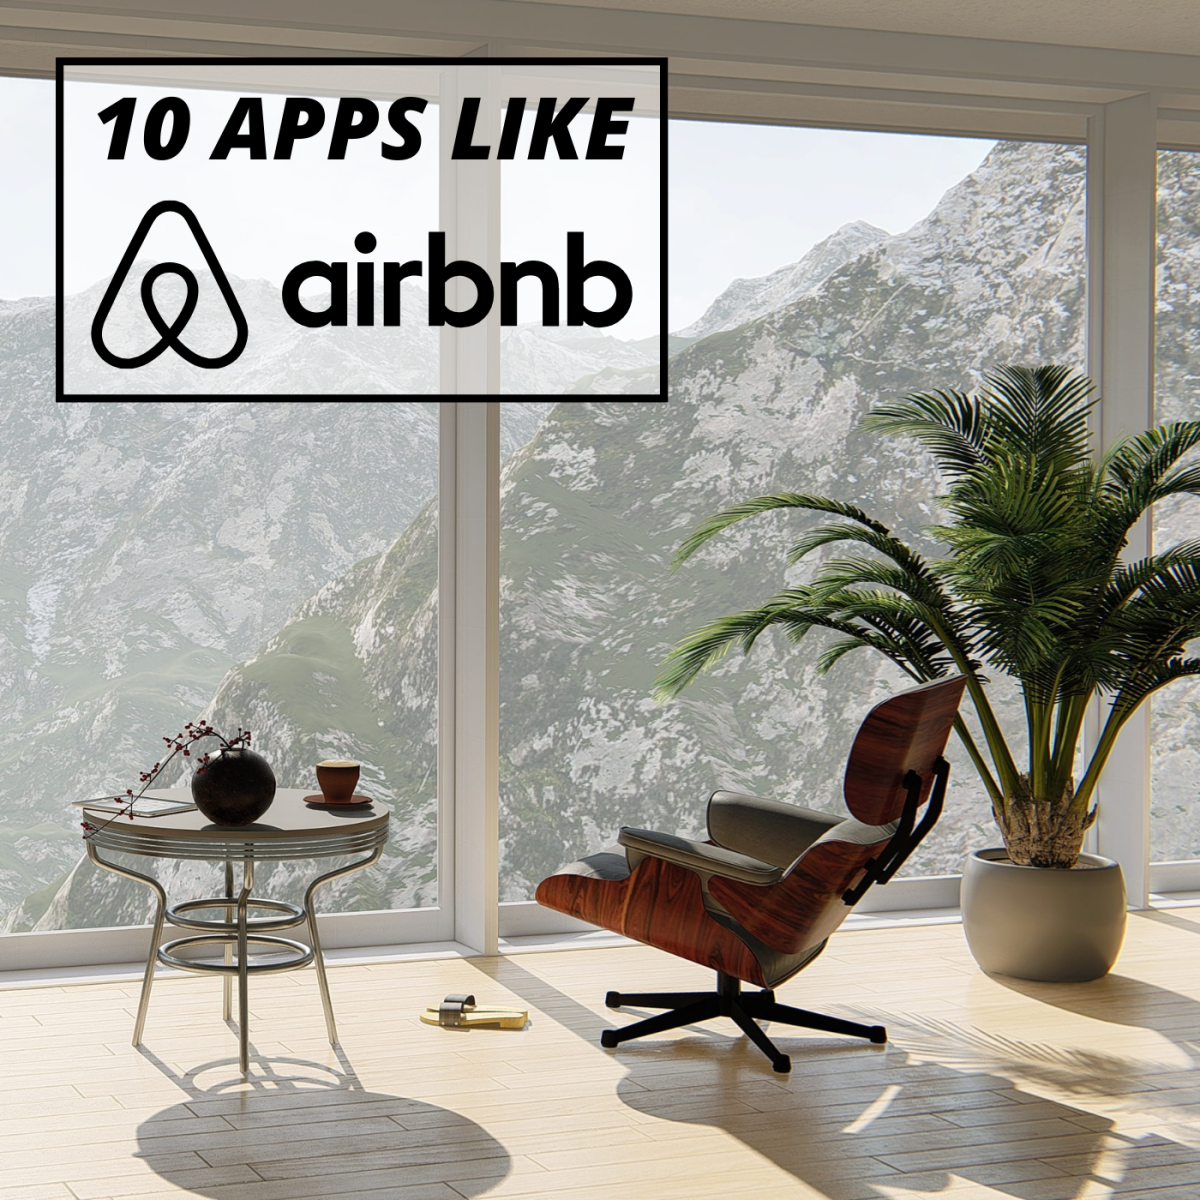 Top 10 Sites and Apps Like Airbnb That Everyone Should Try